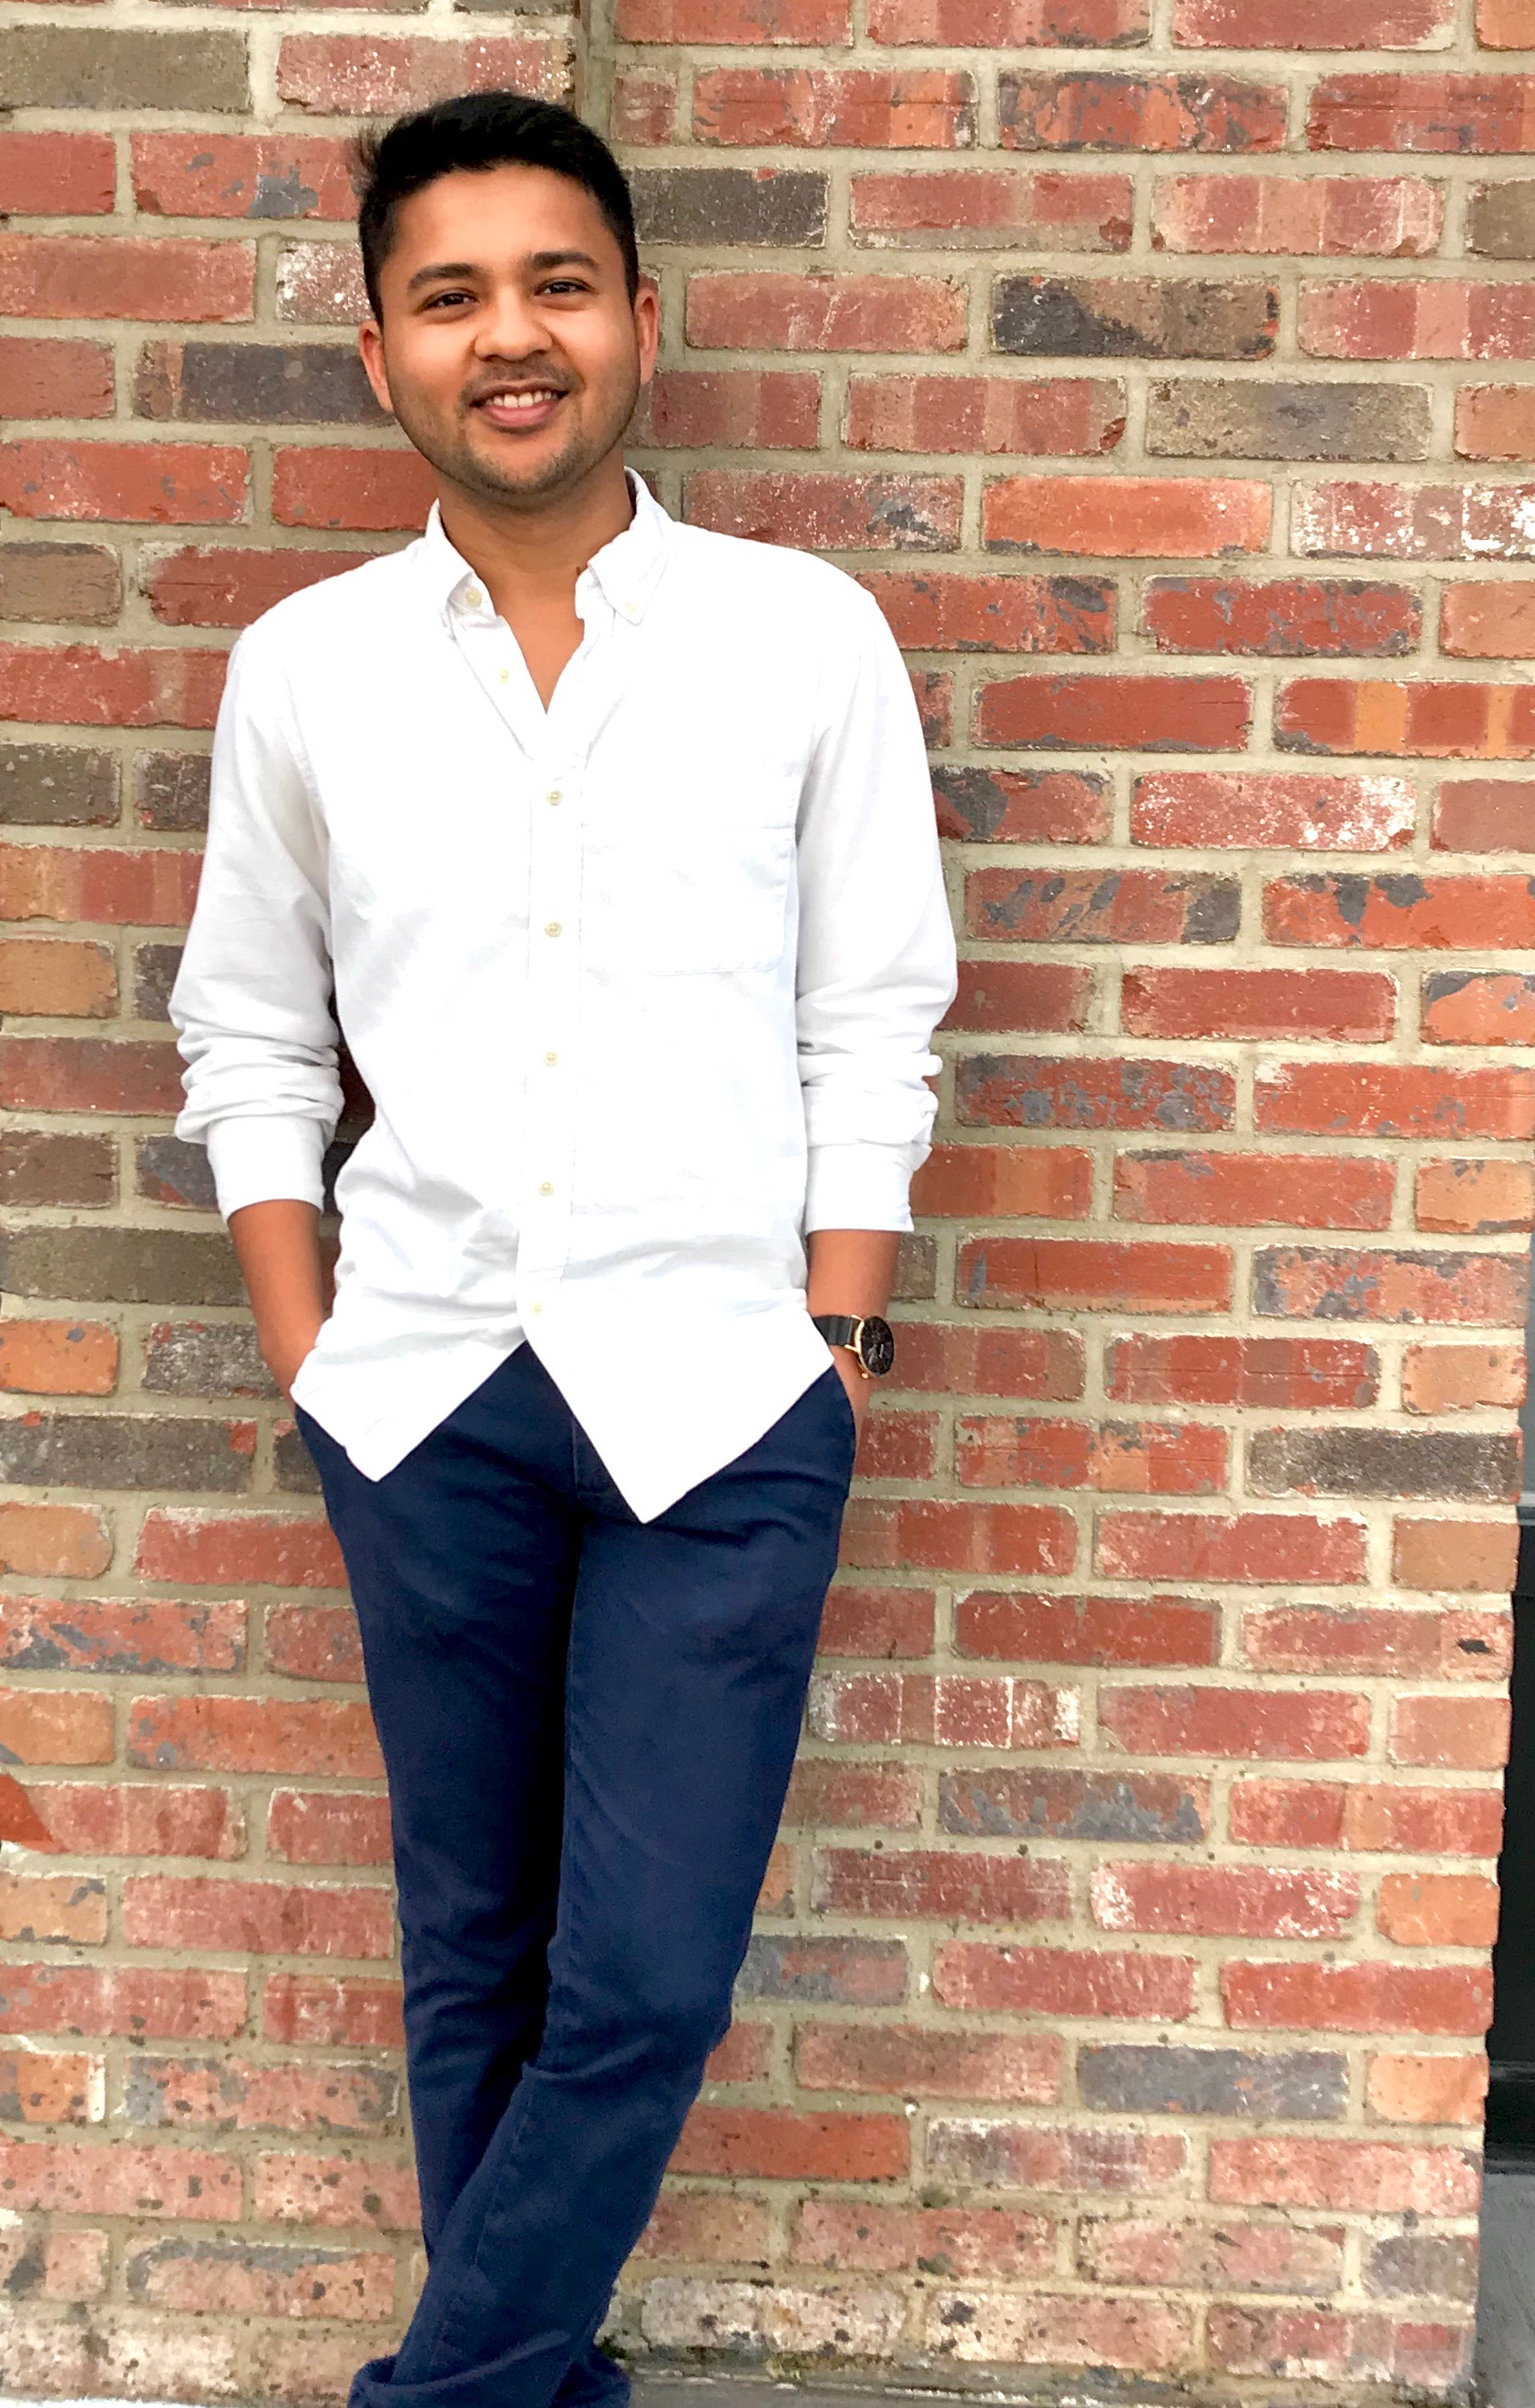 Aakash Shah, MSPAS, PA-C - Aakash Shah is a Board Certified Physician Assistant employed in New York City. He currently works full time in Orthopedic Surgery and part time in Internal Medicine. With practicing in a specialty and primary care, he maintains broad based knowledge in medicine, which a PA is intended to have. Aakash graduated with Masters in Physician Assistant Studies from New York Institute of Technology. There, he spent 2 years in didactic and 1 year in rotations around New York Tri-state area.Prior to PA school, Aakash attended his undergraduate coursework at Castleton University, where he received his Bachelor's in Science in Biology and Bachelor's of Arts in Health Science with a minor in Chemistry. He researched genetic differences among the population of Arabidopsis lyrata based upon their location and climate in his Junior year and during his senior year, he studied the enzymatic characterization of glyceraldehyde-3- phosphate dehydrogenase from Clostridium acetobutylicum. For both projects, Aakash received an award through the Natural Science department. More importantly, Aakash learned the value of teaching by becoming a tutor for Anatomy & Physiology, Chemistry, Organic Chemistry, Physics. By teaching over 30 students one-on- one, he has a good foundation in teaching all types of students.Aakash genuinely enjoys coaching and allowing students to find their paths. From his tutoring times at Castleton University, to now, teaching patients of their disease process and mentoring PA students, Aakash looks forward to help prospective PA students find their paths.